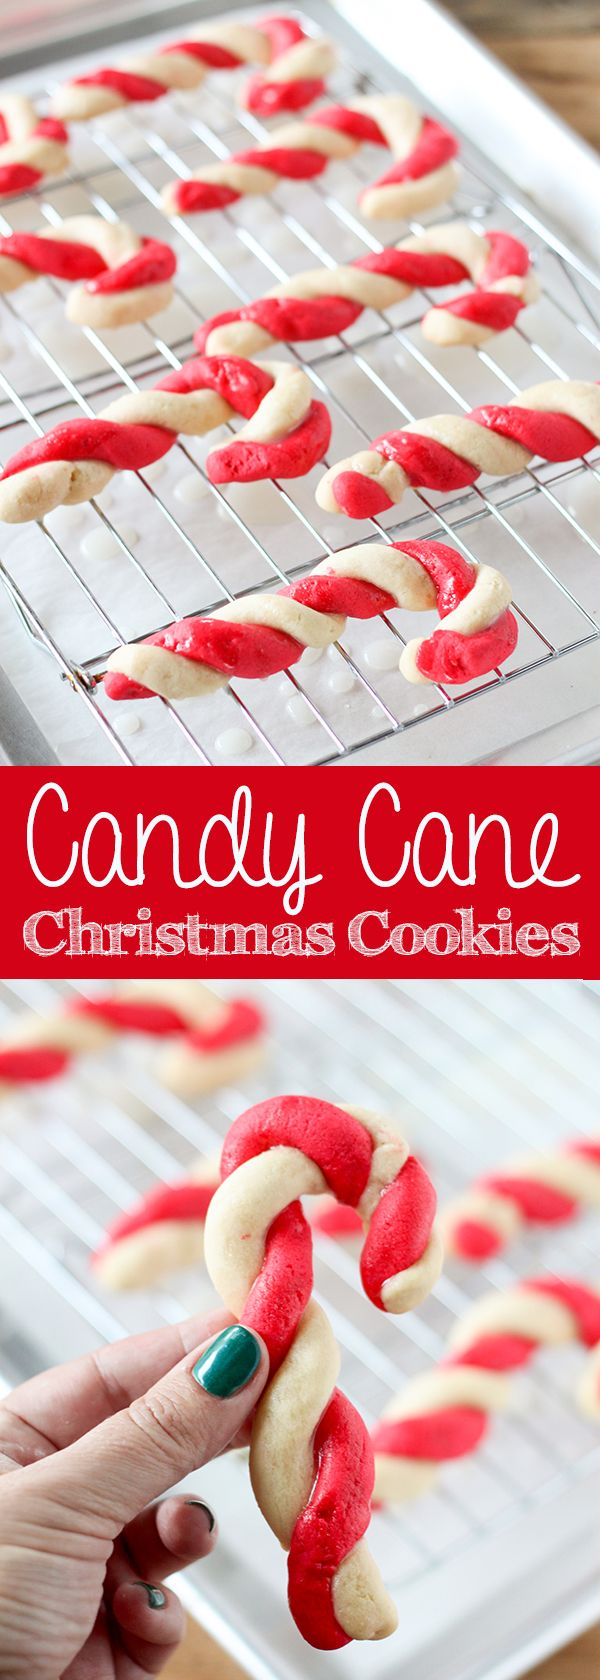 Peppermint Candy Cane Christmas Cookies- delicious dessert recipe for kids! For more easy food recipes, creative craft ideas, easy home decor and DIY projects, check us out at #no2pencil. #food #christmas #recipeoftheday #recipeideas